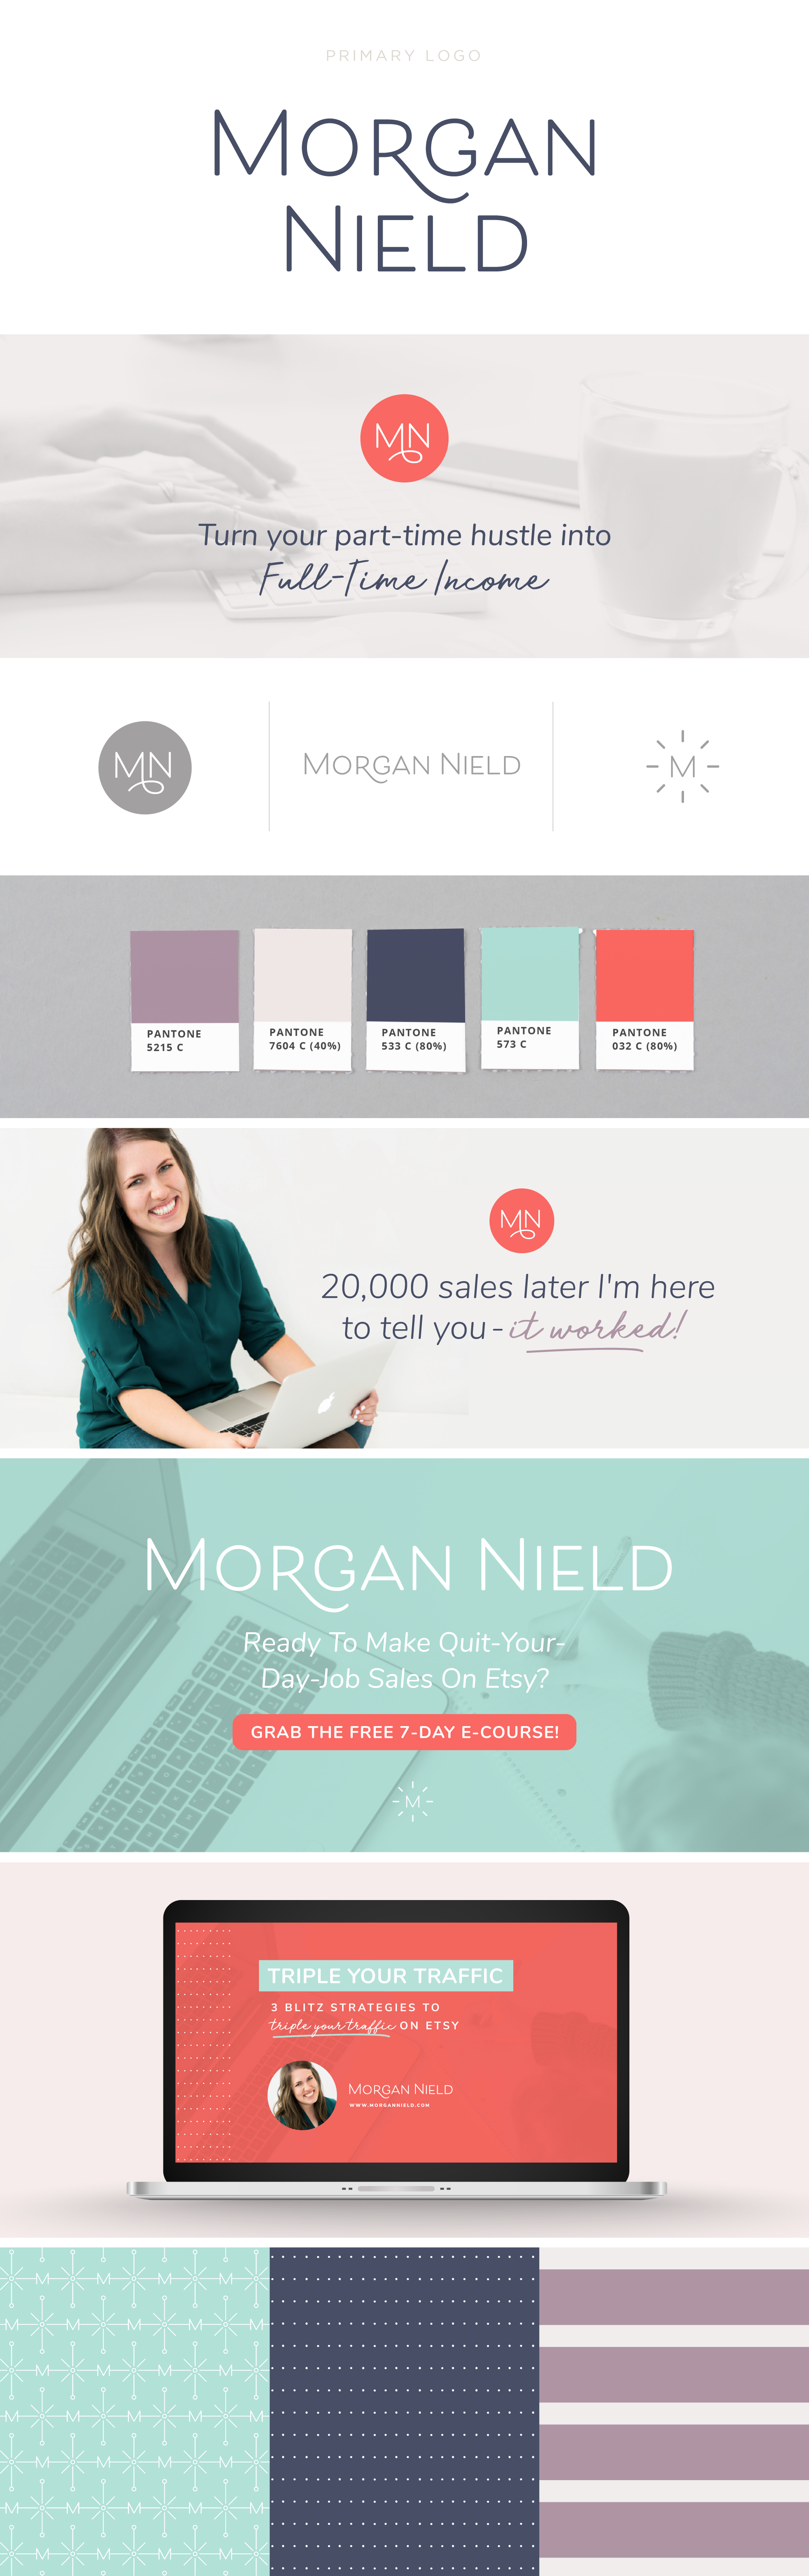 Morgan Nield brand design | Collaboration between Spruce Rd and Pace Creative Design Studio